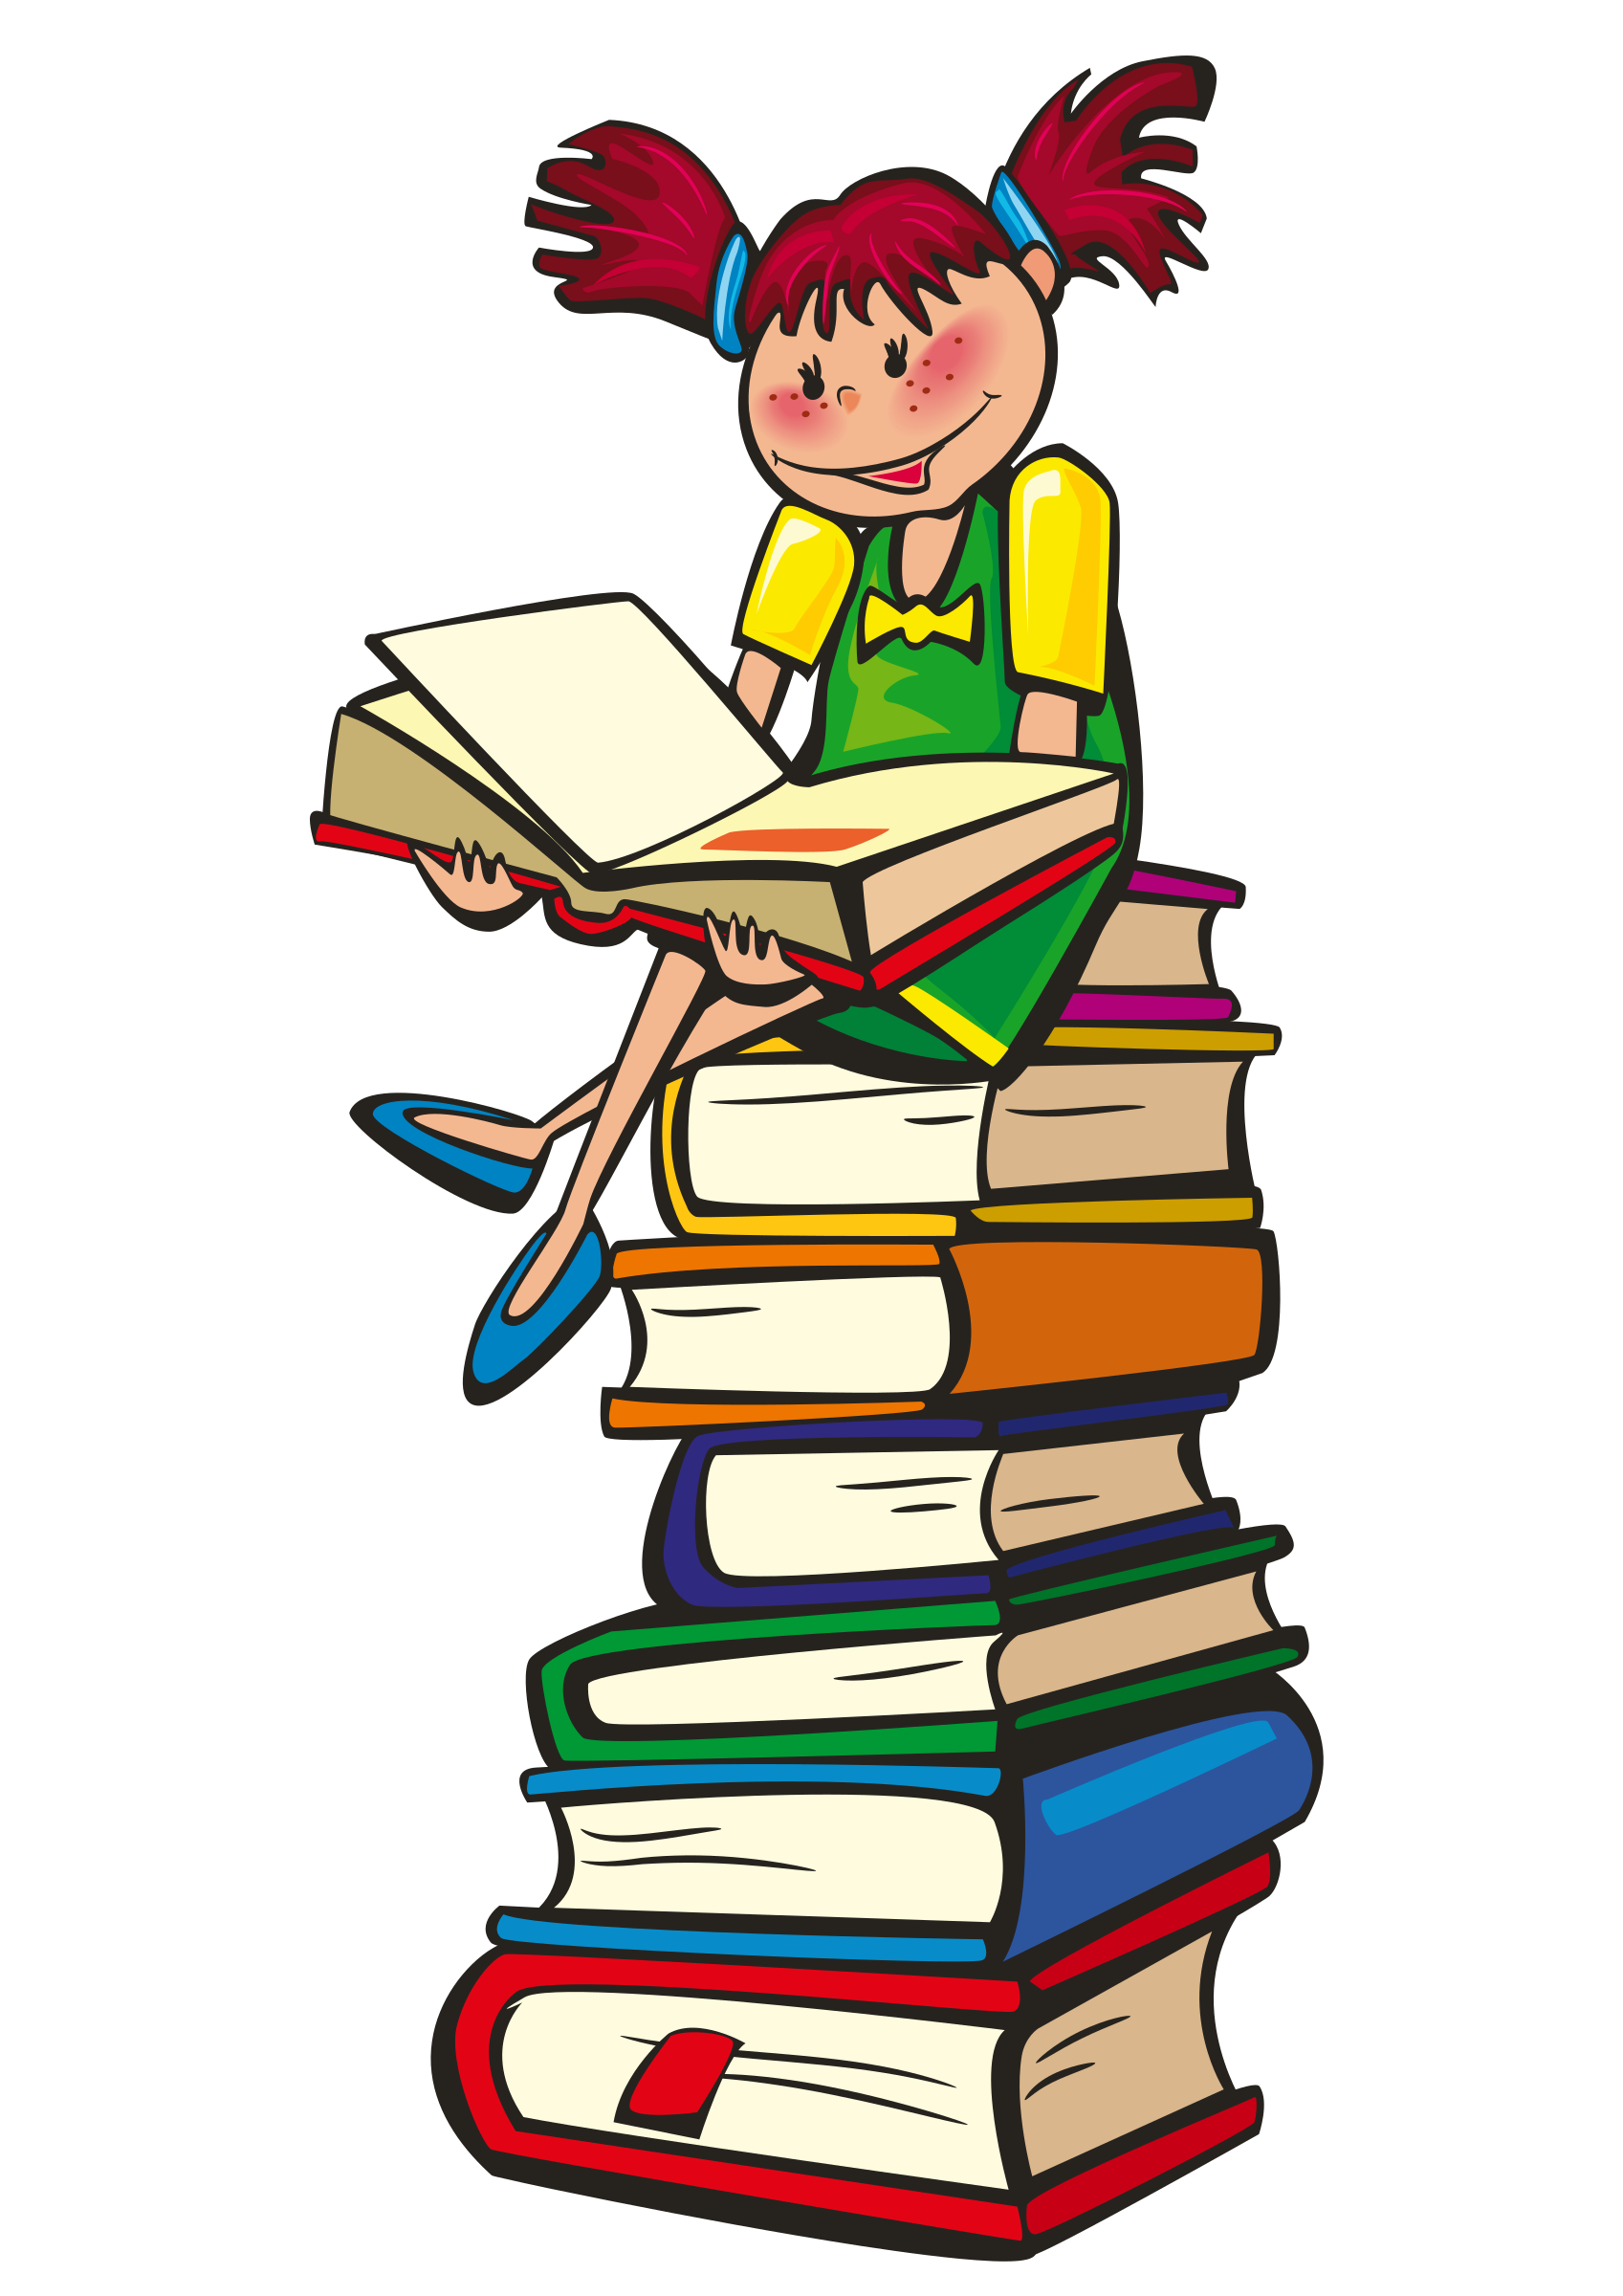 school books clipart library clipart school books mathszone co rh mathszone co